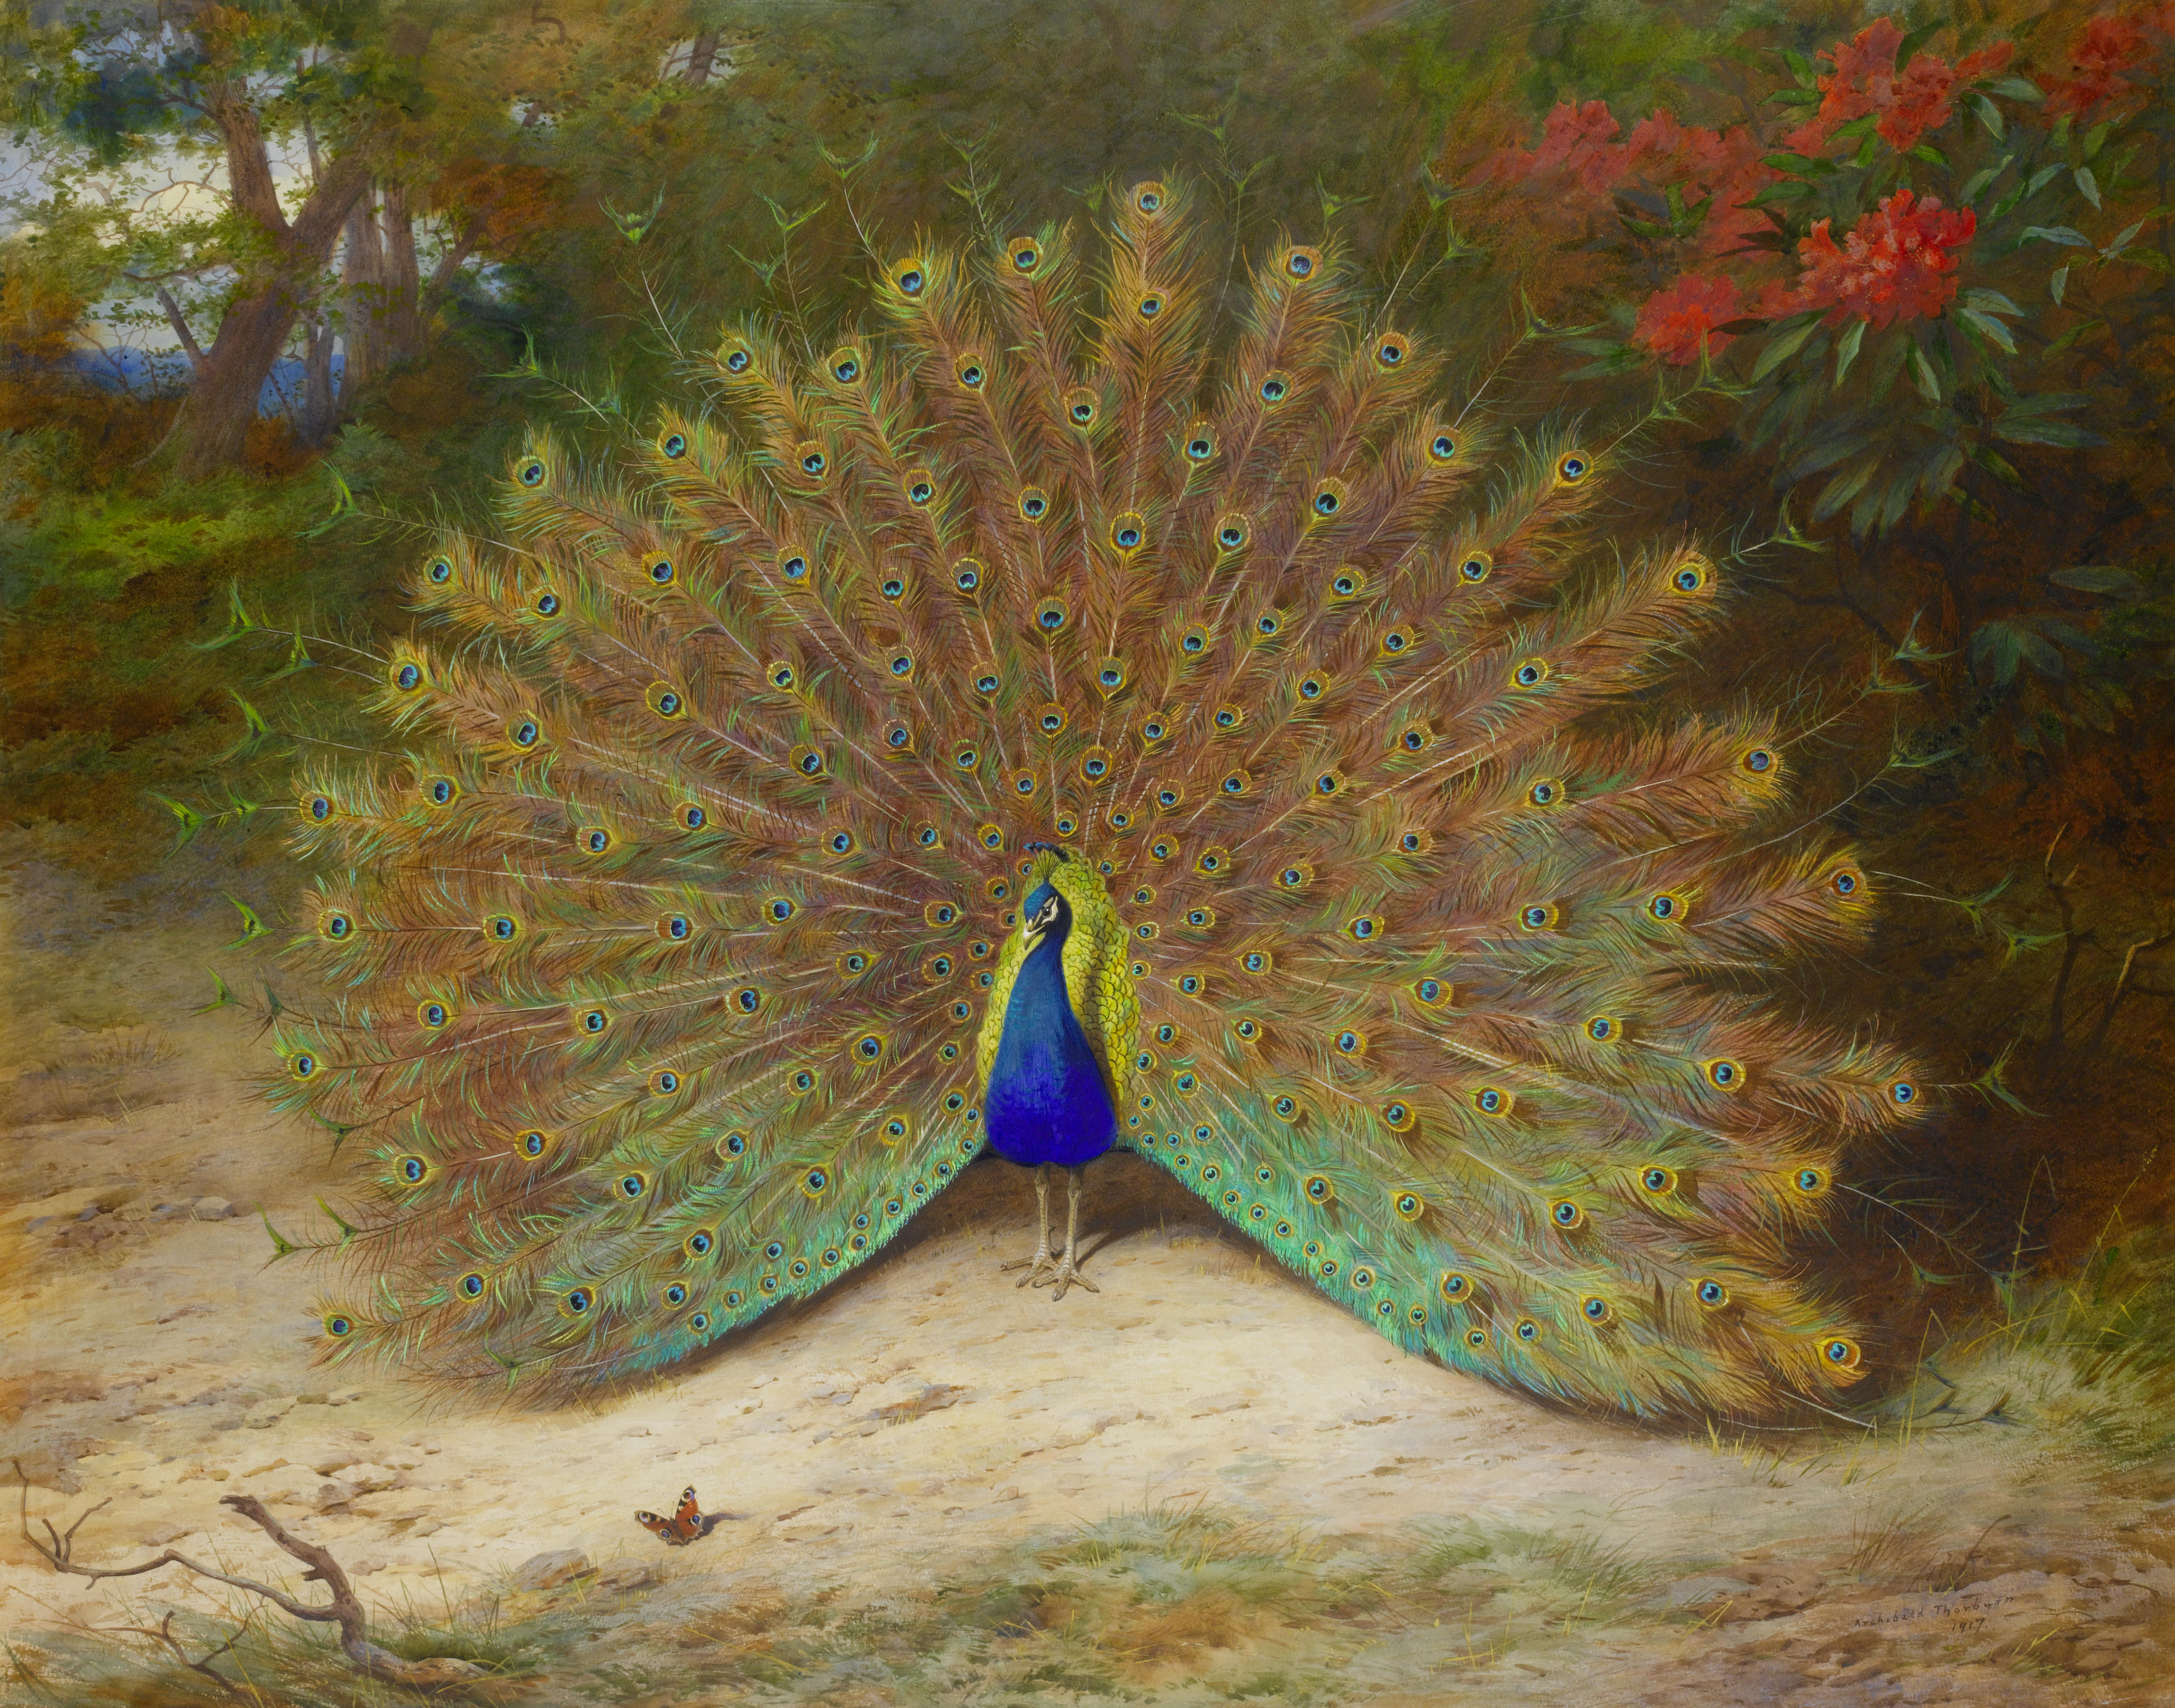 Amazing 3d Peacock Wings Wallpapers Peacock S Garden Archibald Thorburn Peacock And Peacock